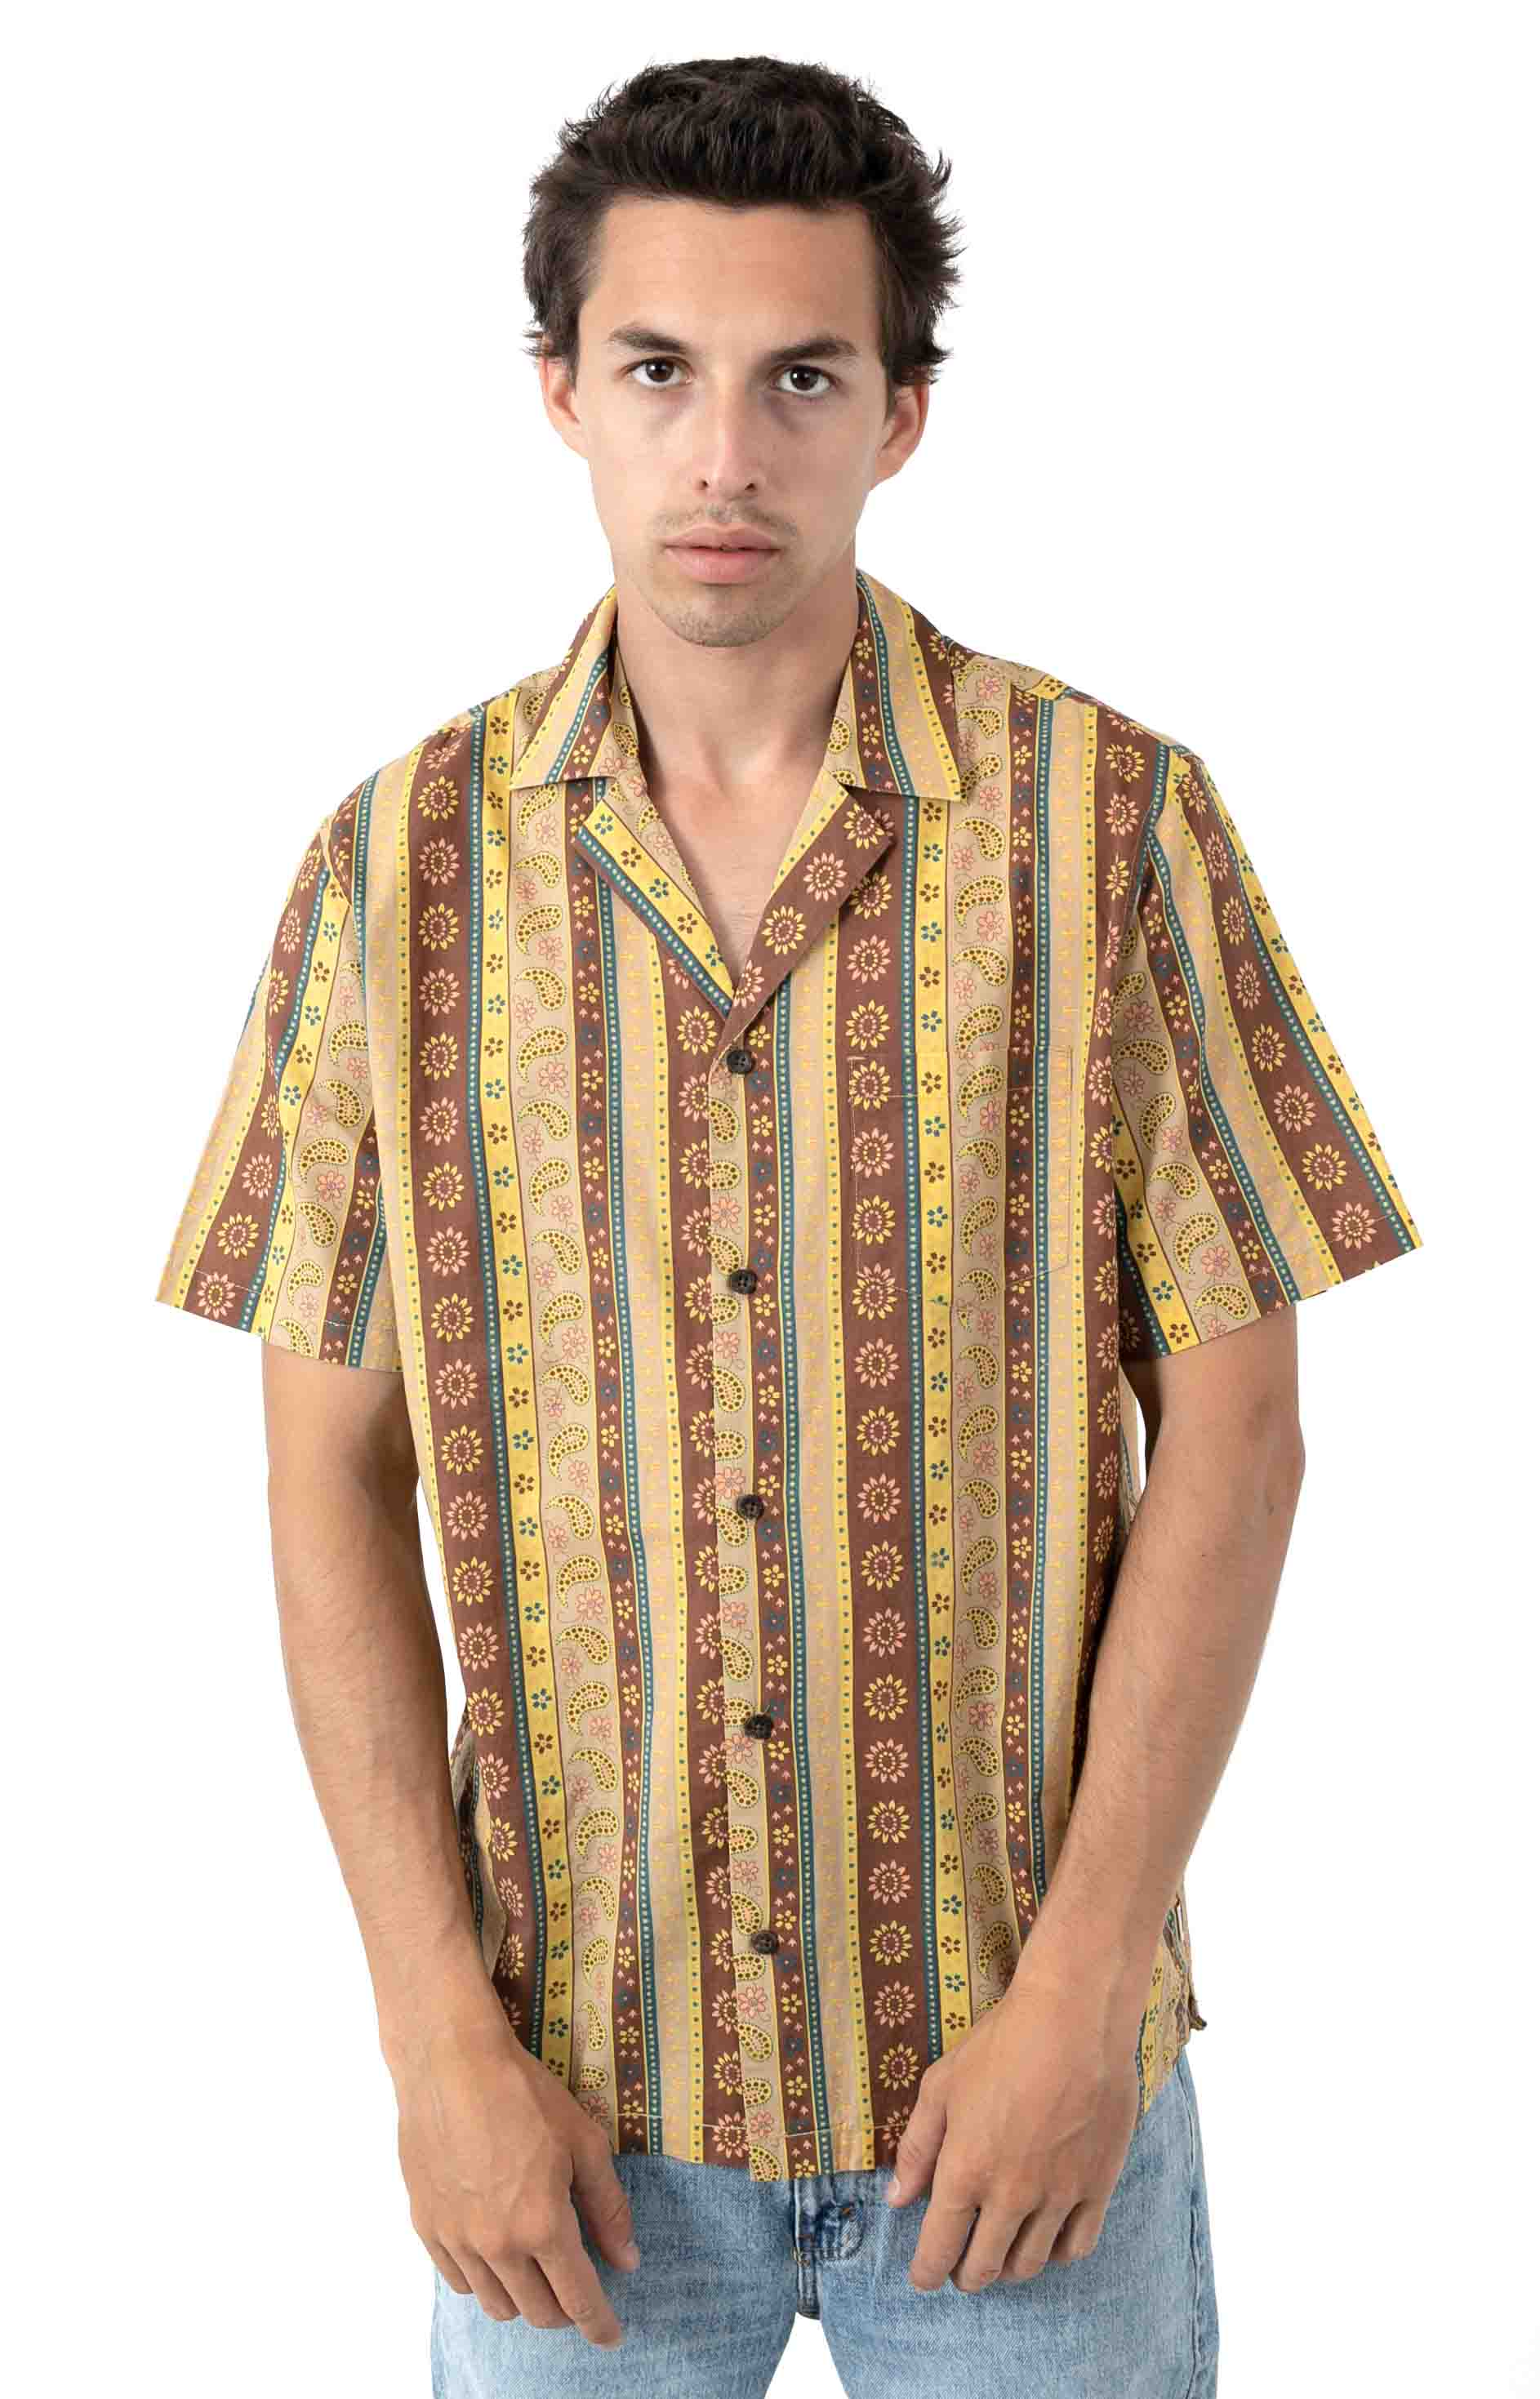 Bloomsbury S/S Button-Up Shirt - Ginger